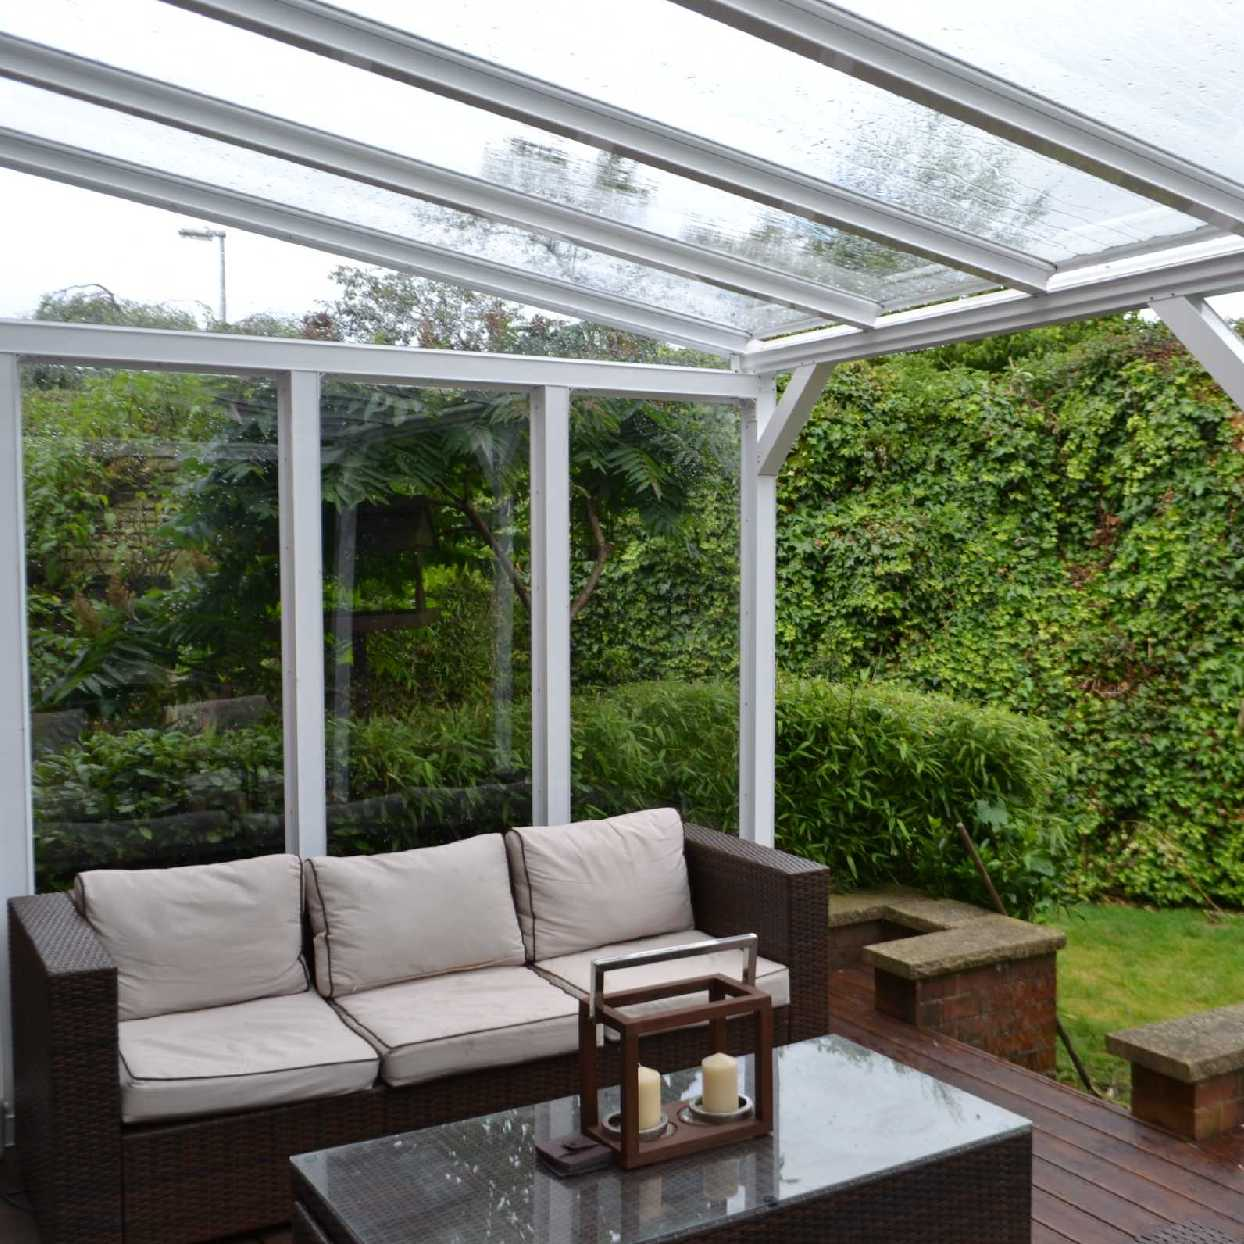 Omega Smart White Lean-To Canopy with 6mm Glass Clear Plate Polycarbonate Glazing - 3.1m (W) x 4.0m (P), (2) Supporting Posts